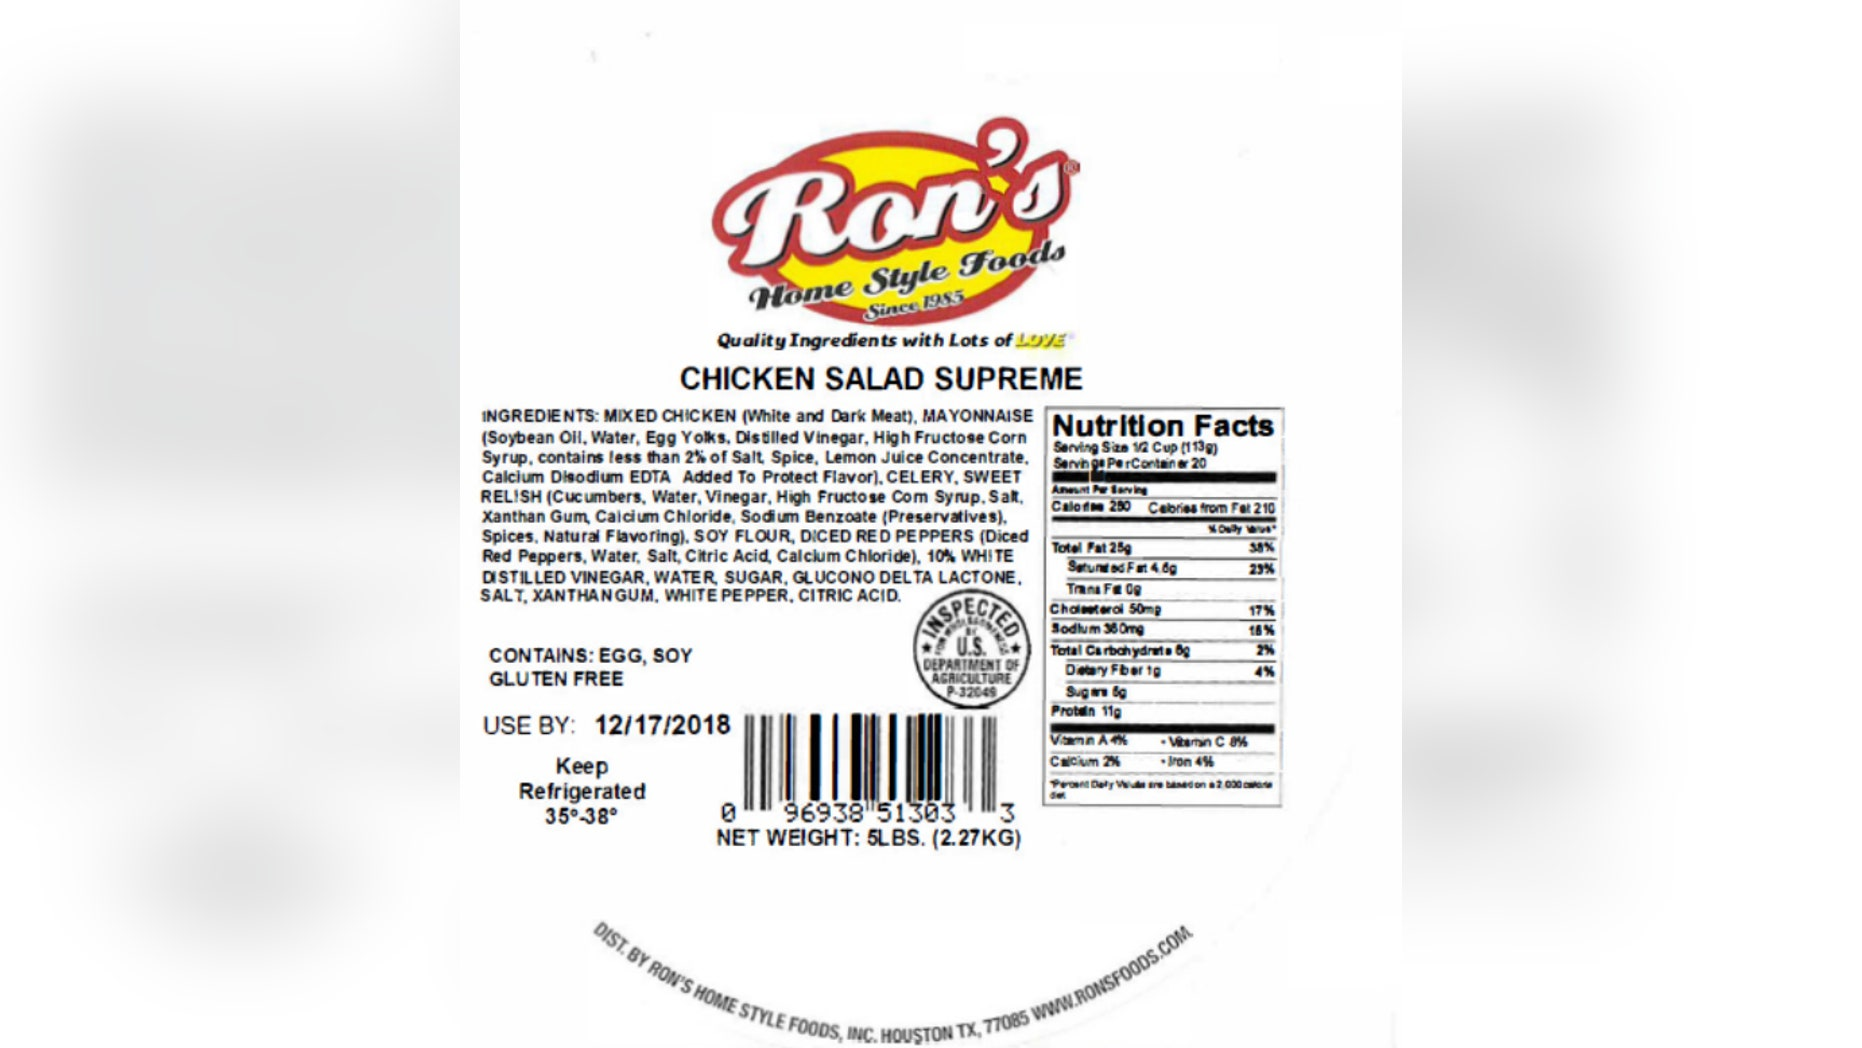 """The U.S. Department of Agricultureon Wednesday announcedthe recall by Ron's Home Style Foods.<br data-cke-eol=""""1"""">"""